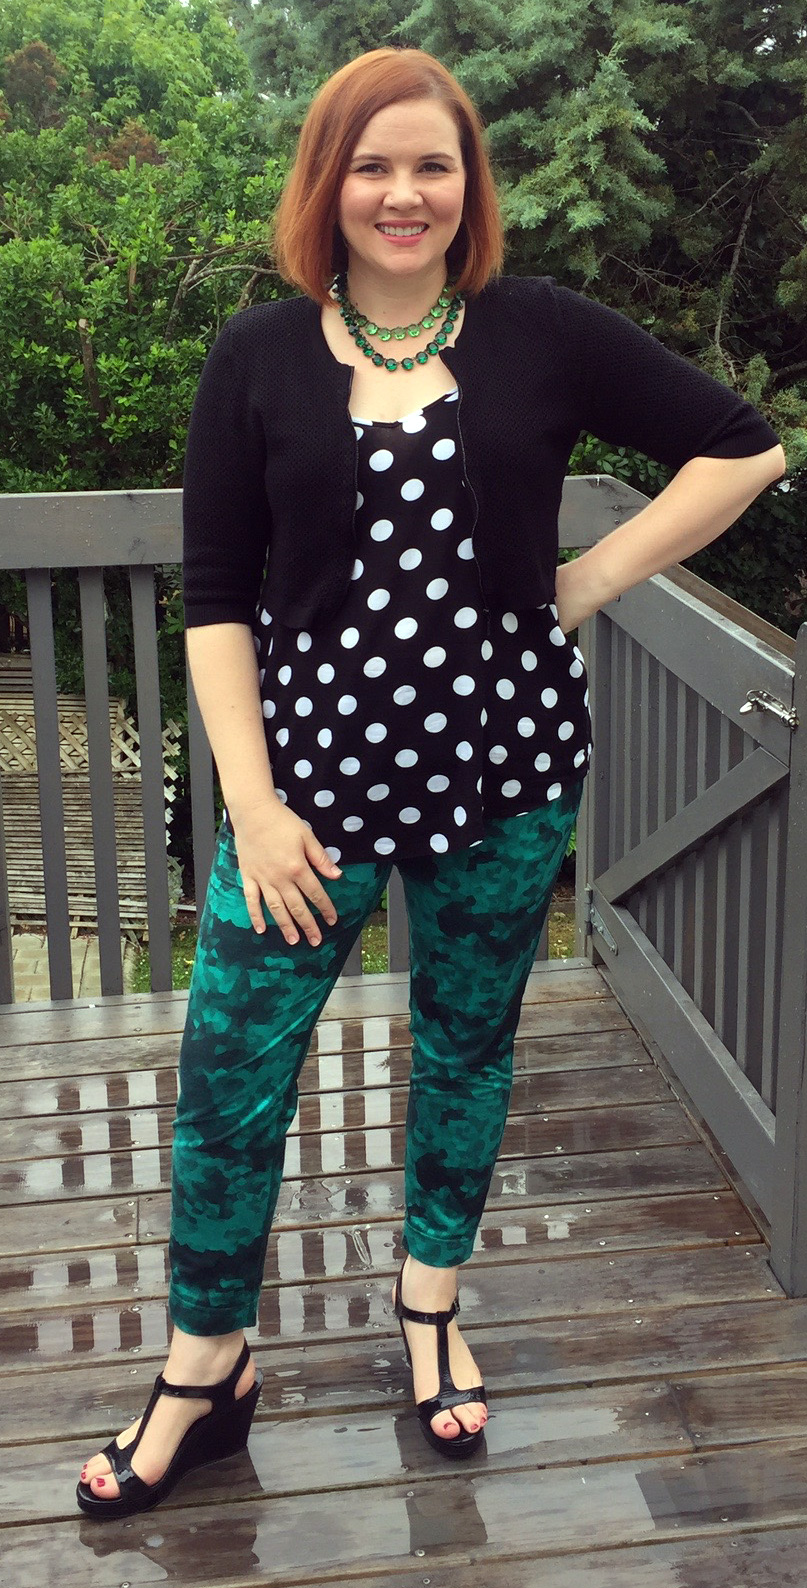 Necklaces from Dames a la Mode, Veronika Maine cardigan, ASOS Curve camisole, Lulu Lemon pants, Country Road wedges.